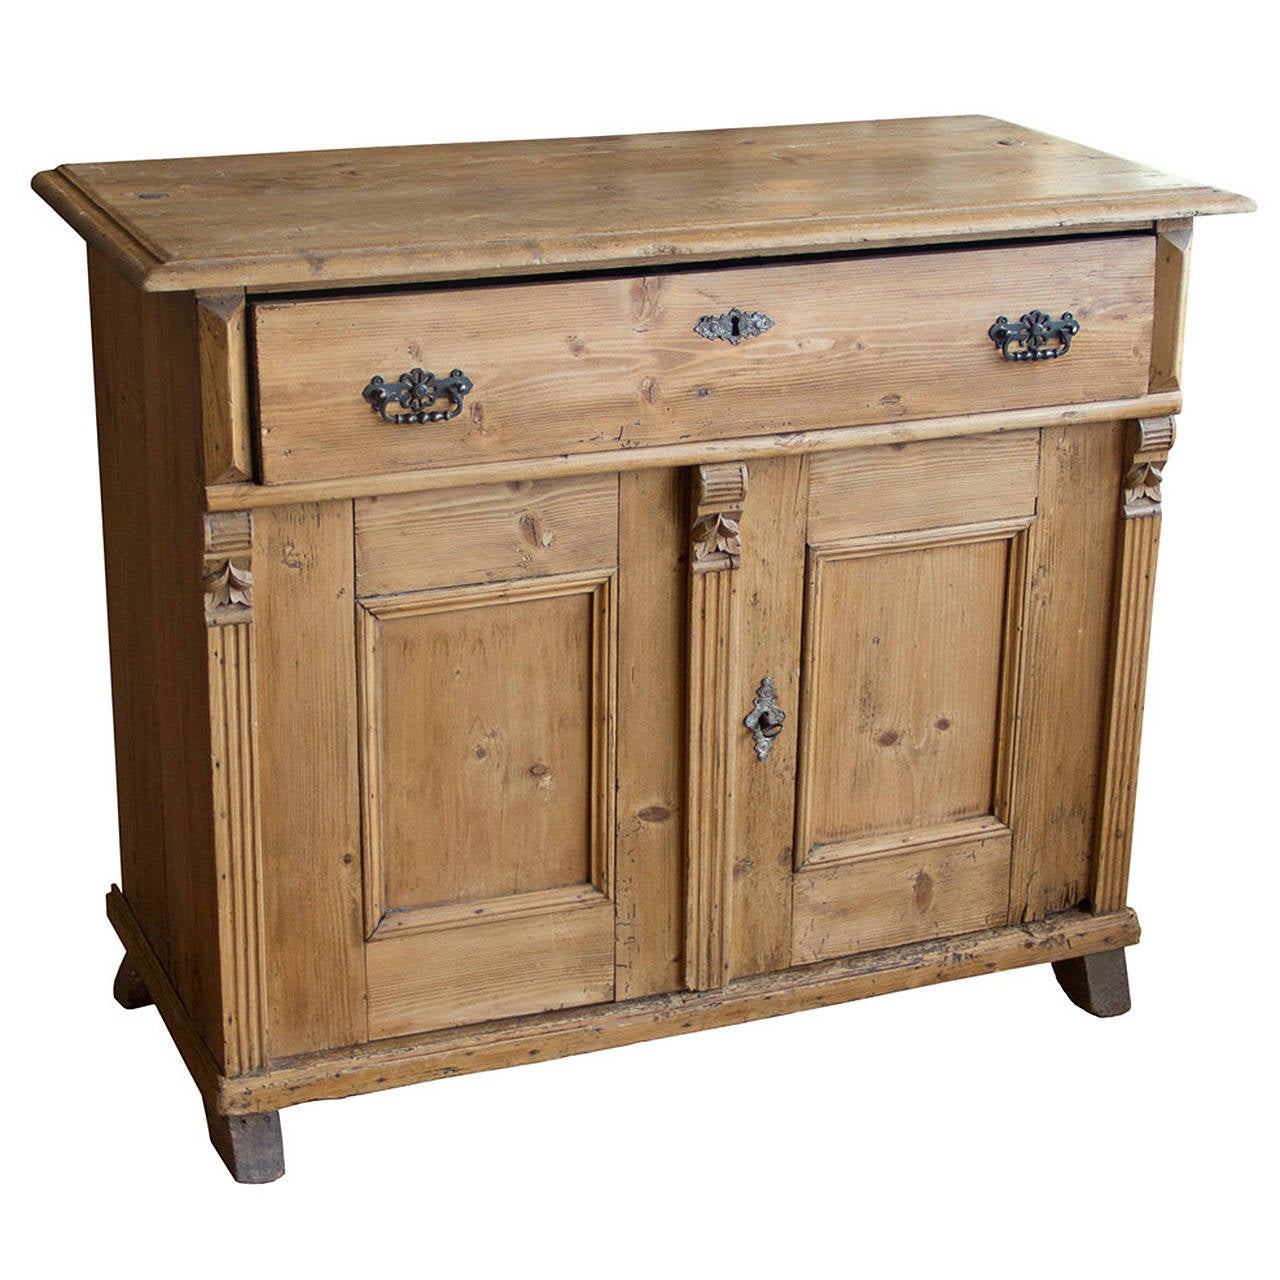 Antique English Pine Cupboard 1 - Antique English Pine Cupboard At 1stdibs